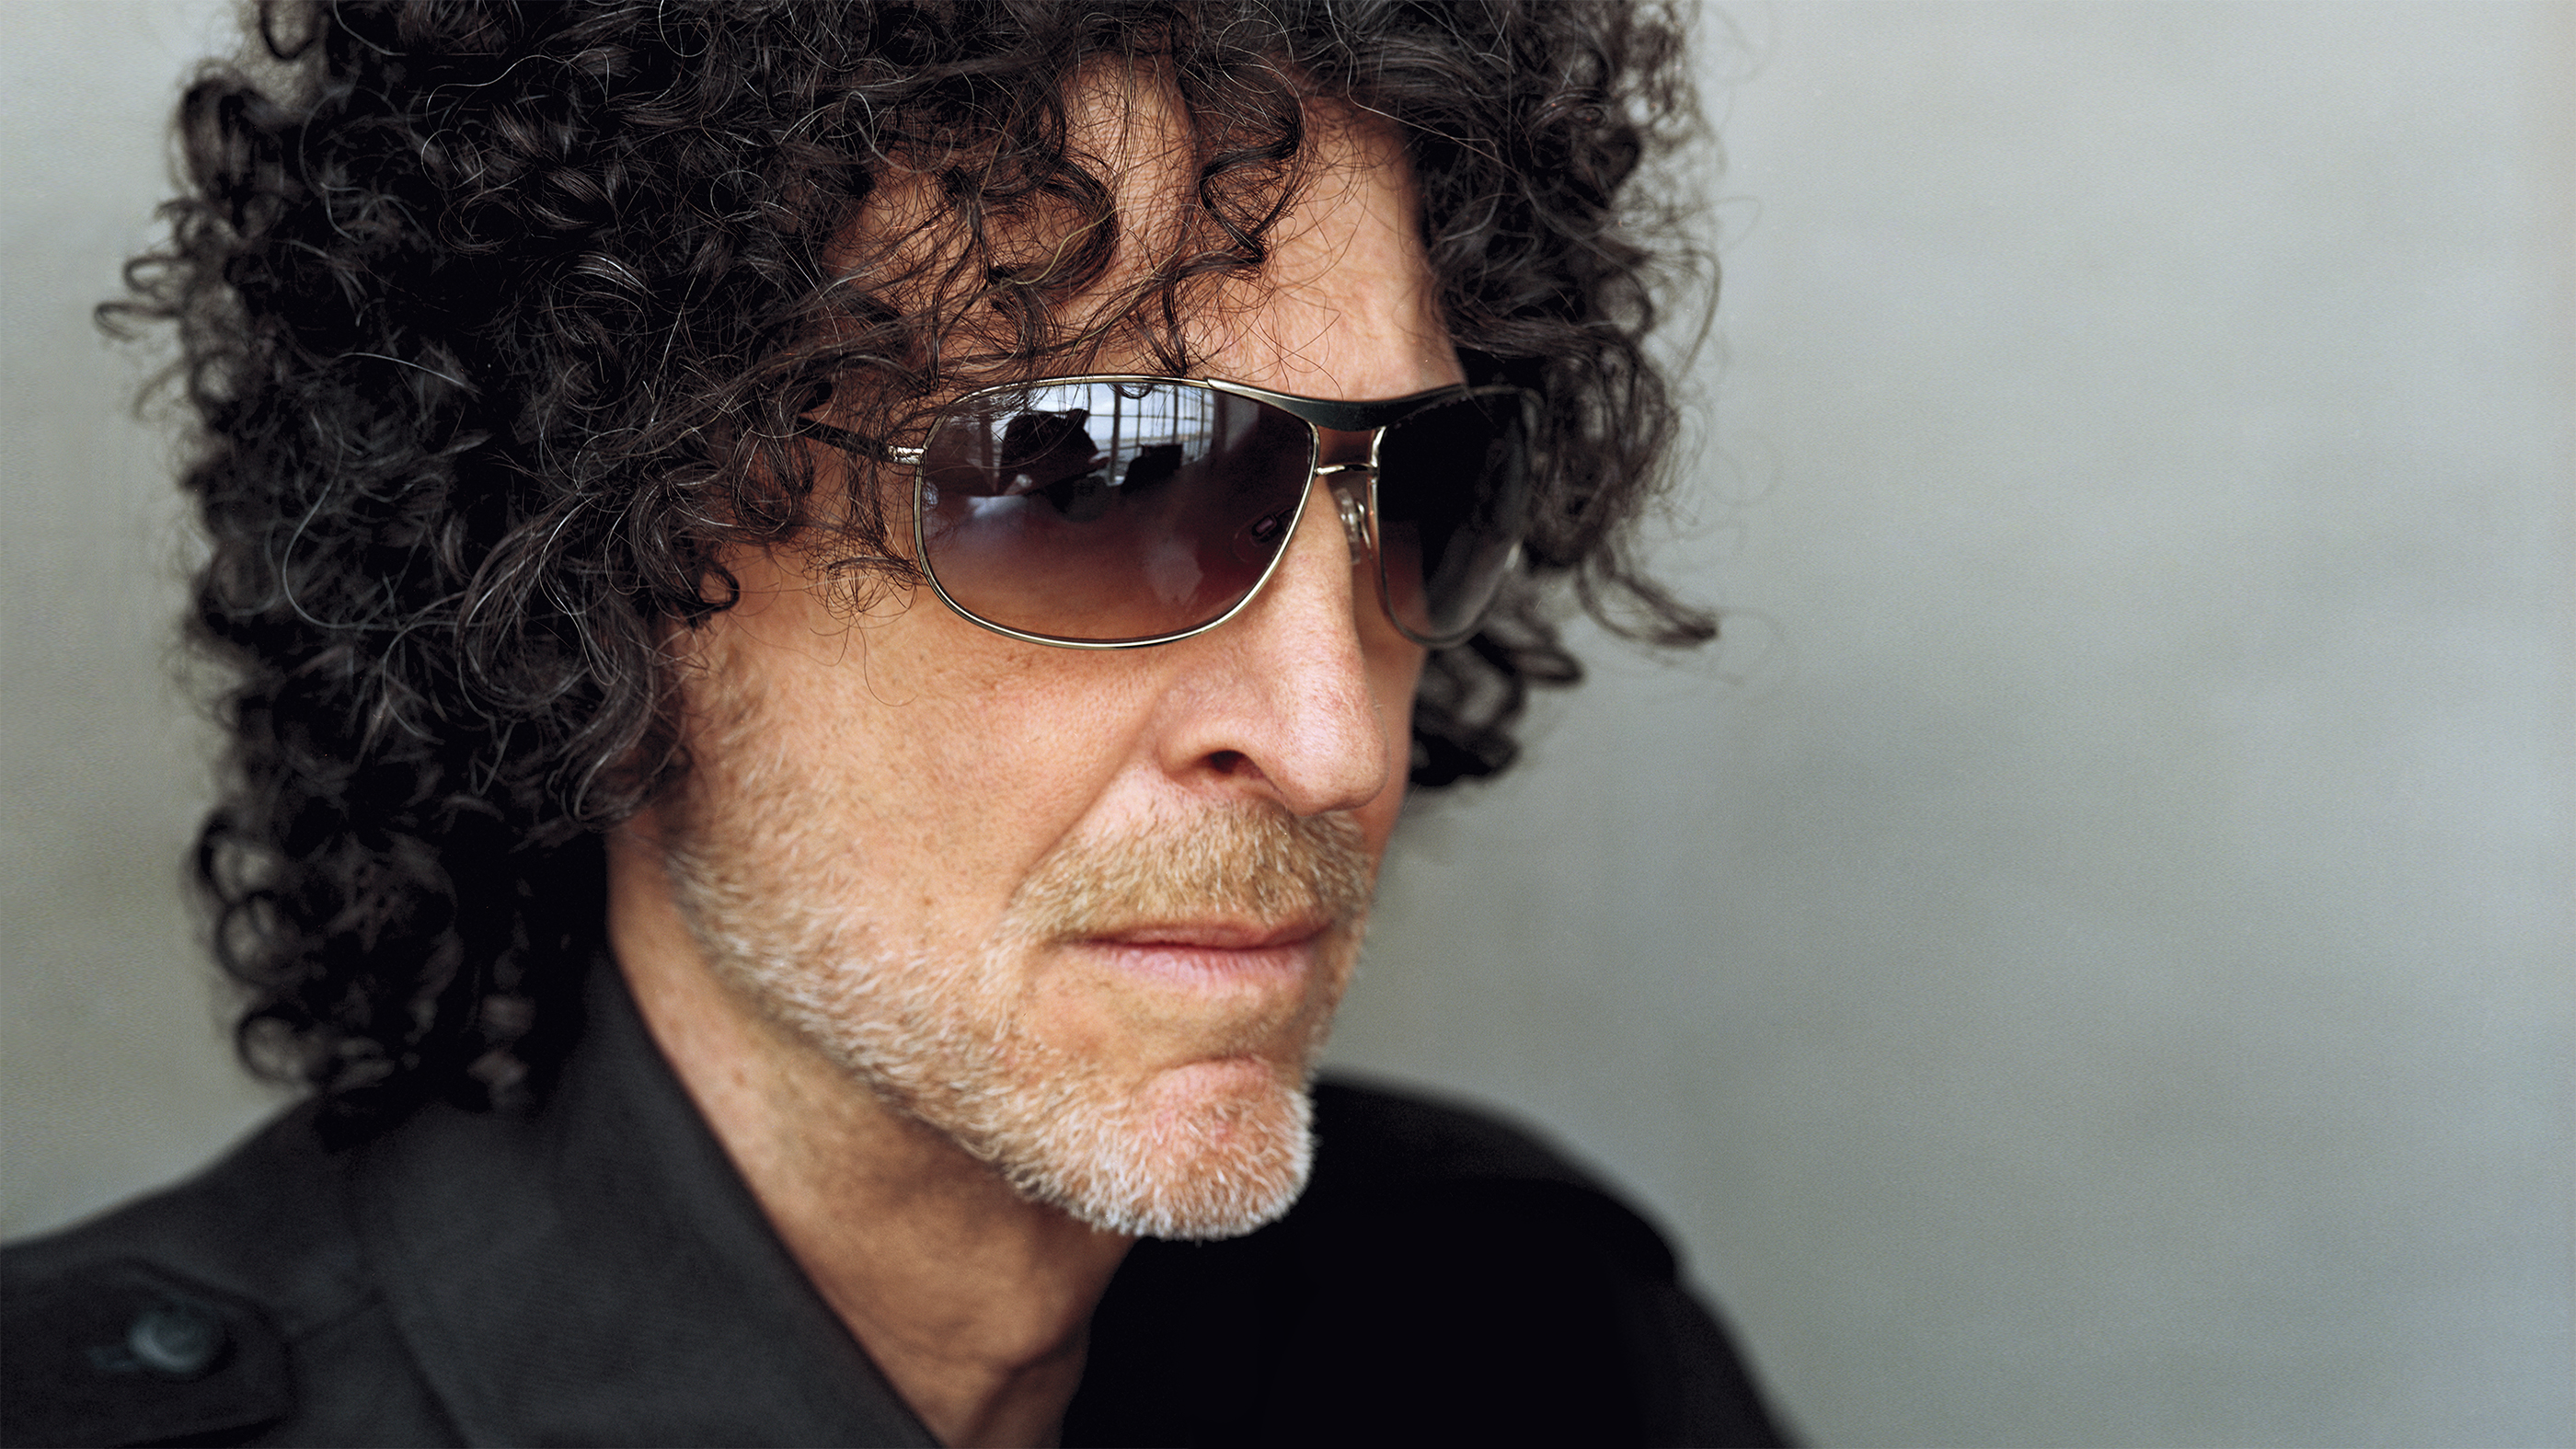 Howard Stern Naked Girls howard stern: rolling stone interview, cover story - rolling